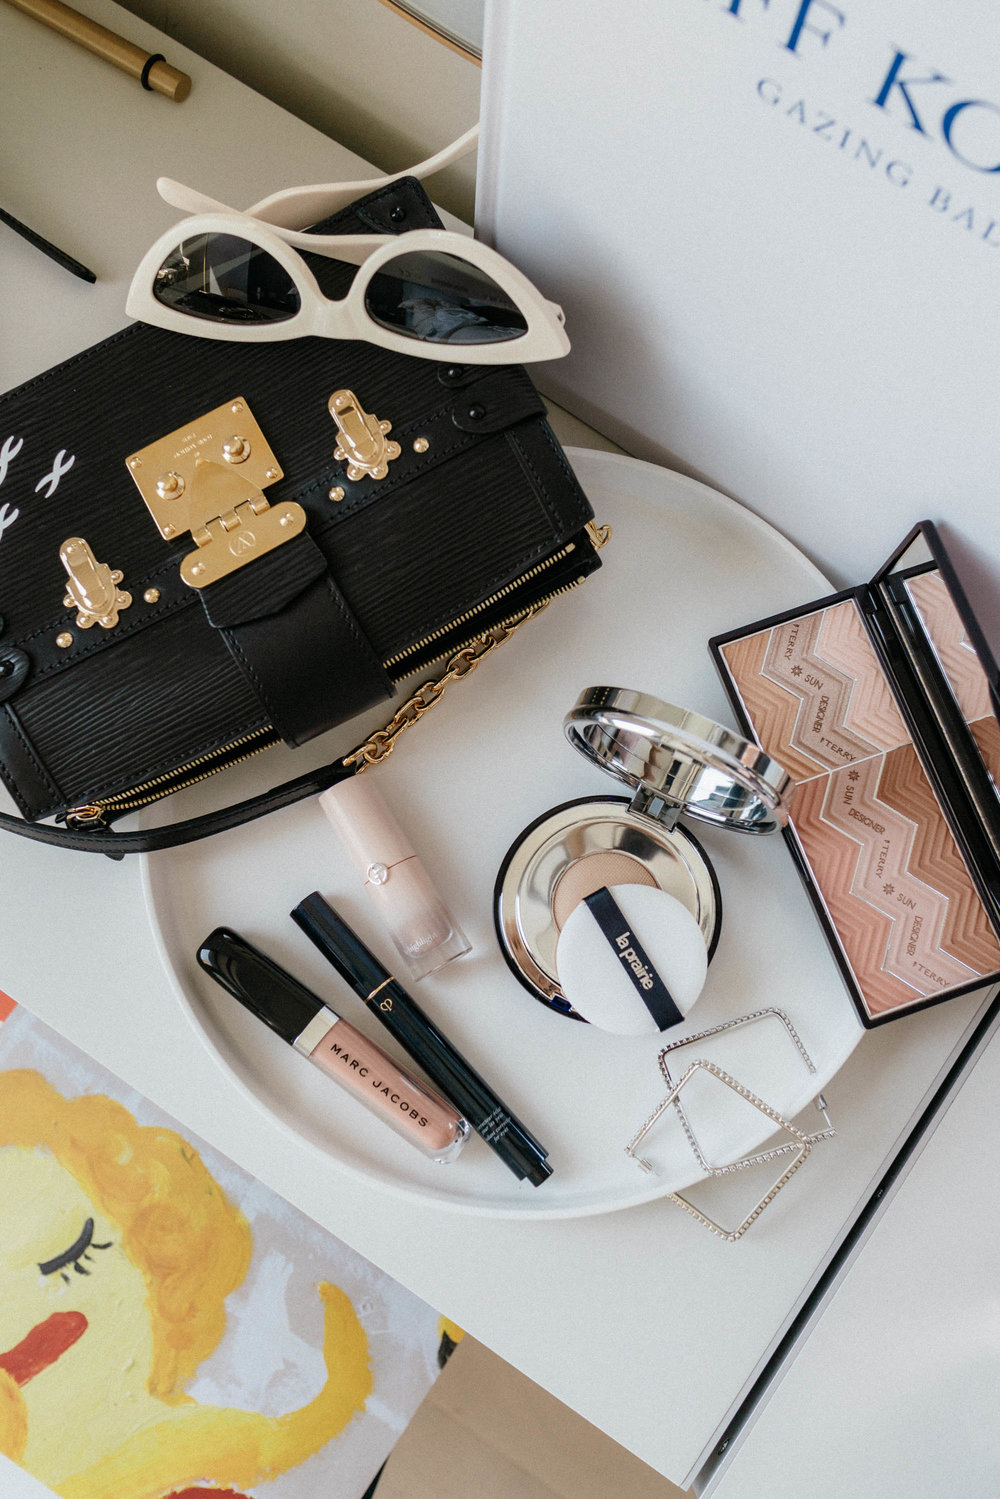 By Terry Palette ,  La Prairie Cushion Compact ,  Armani Beauty Highlighter ,  Clé de Peau Beauté Concealer ,  Marc Jacobs Lipstick ,  AREA Earrings ,  Céline Sunglasses